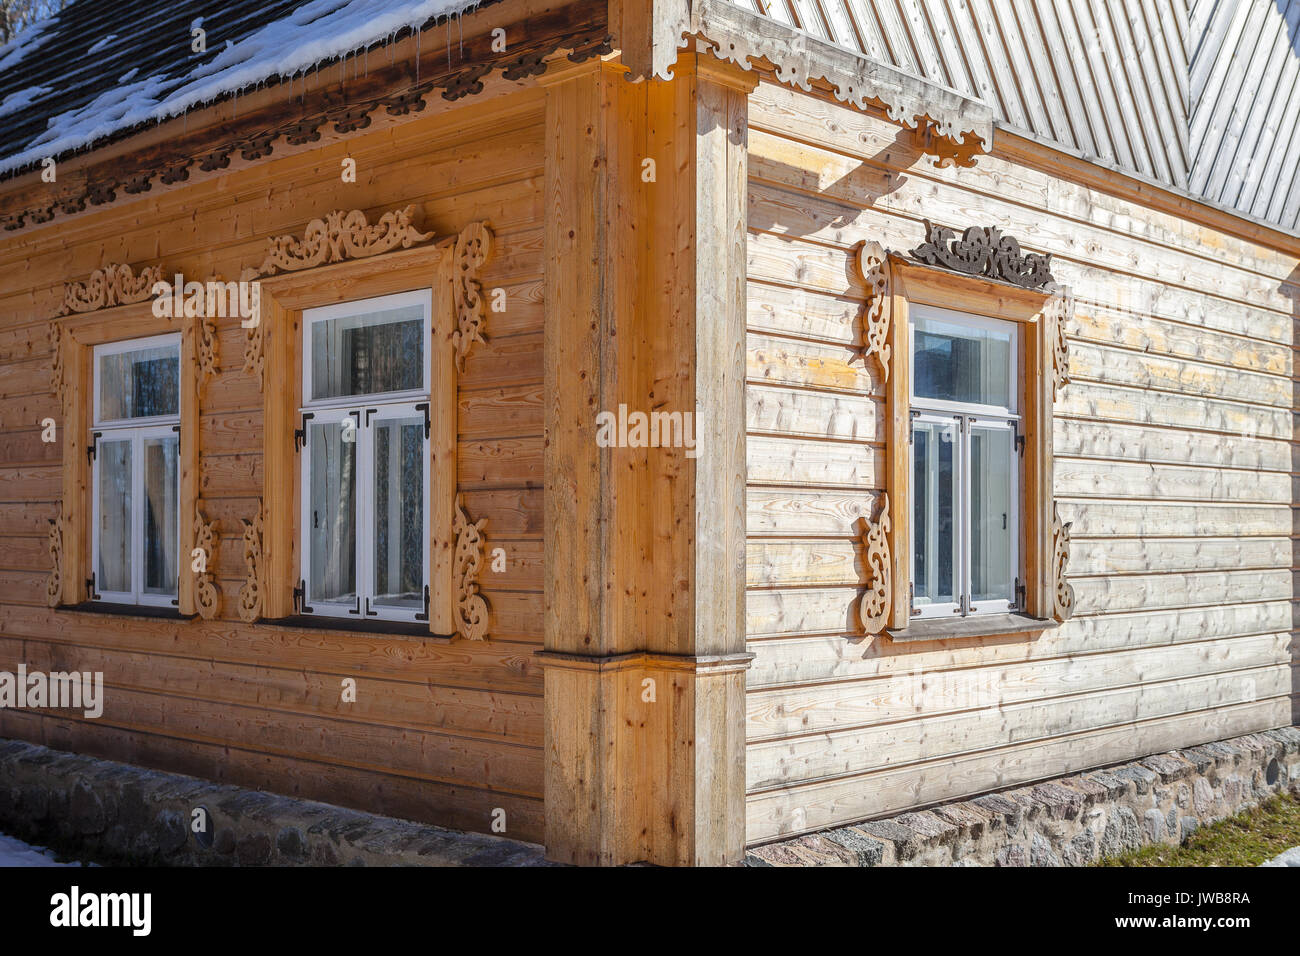 New wooden house wall in traditional carving style - Stock Image